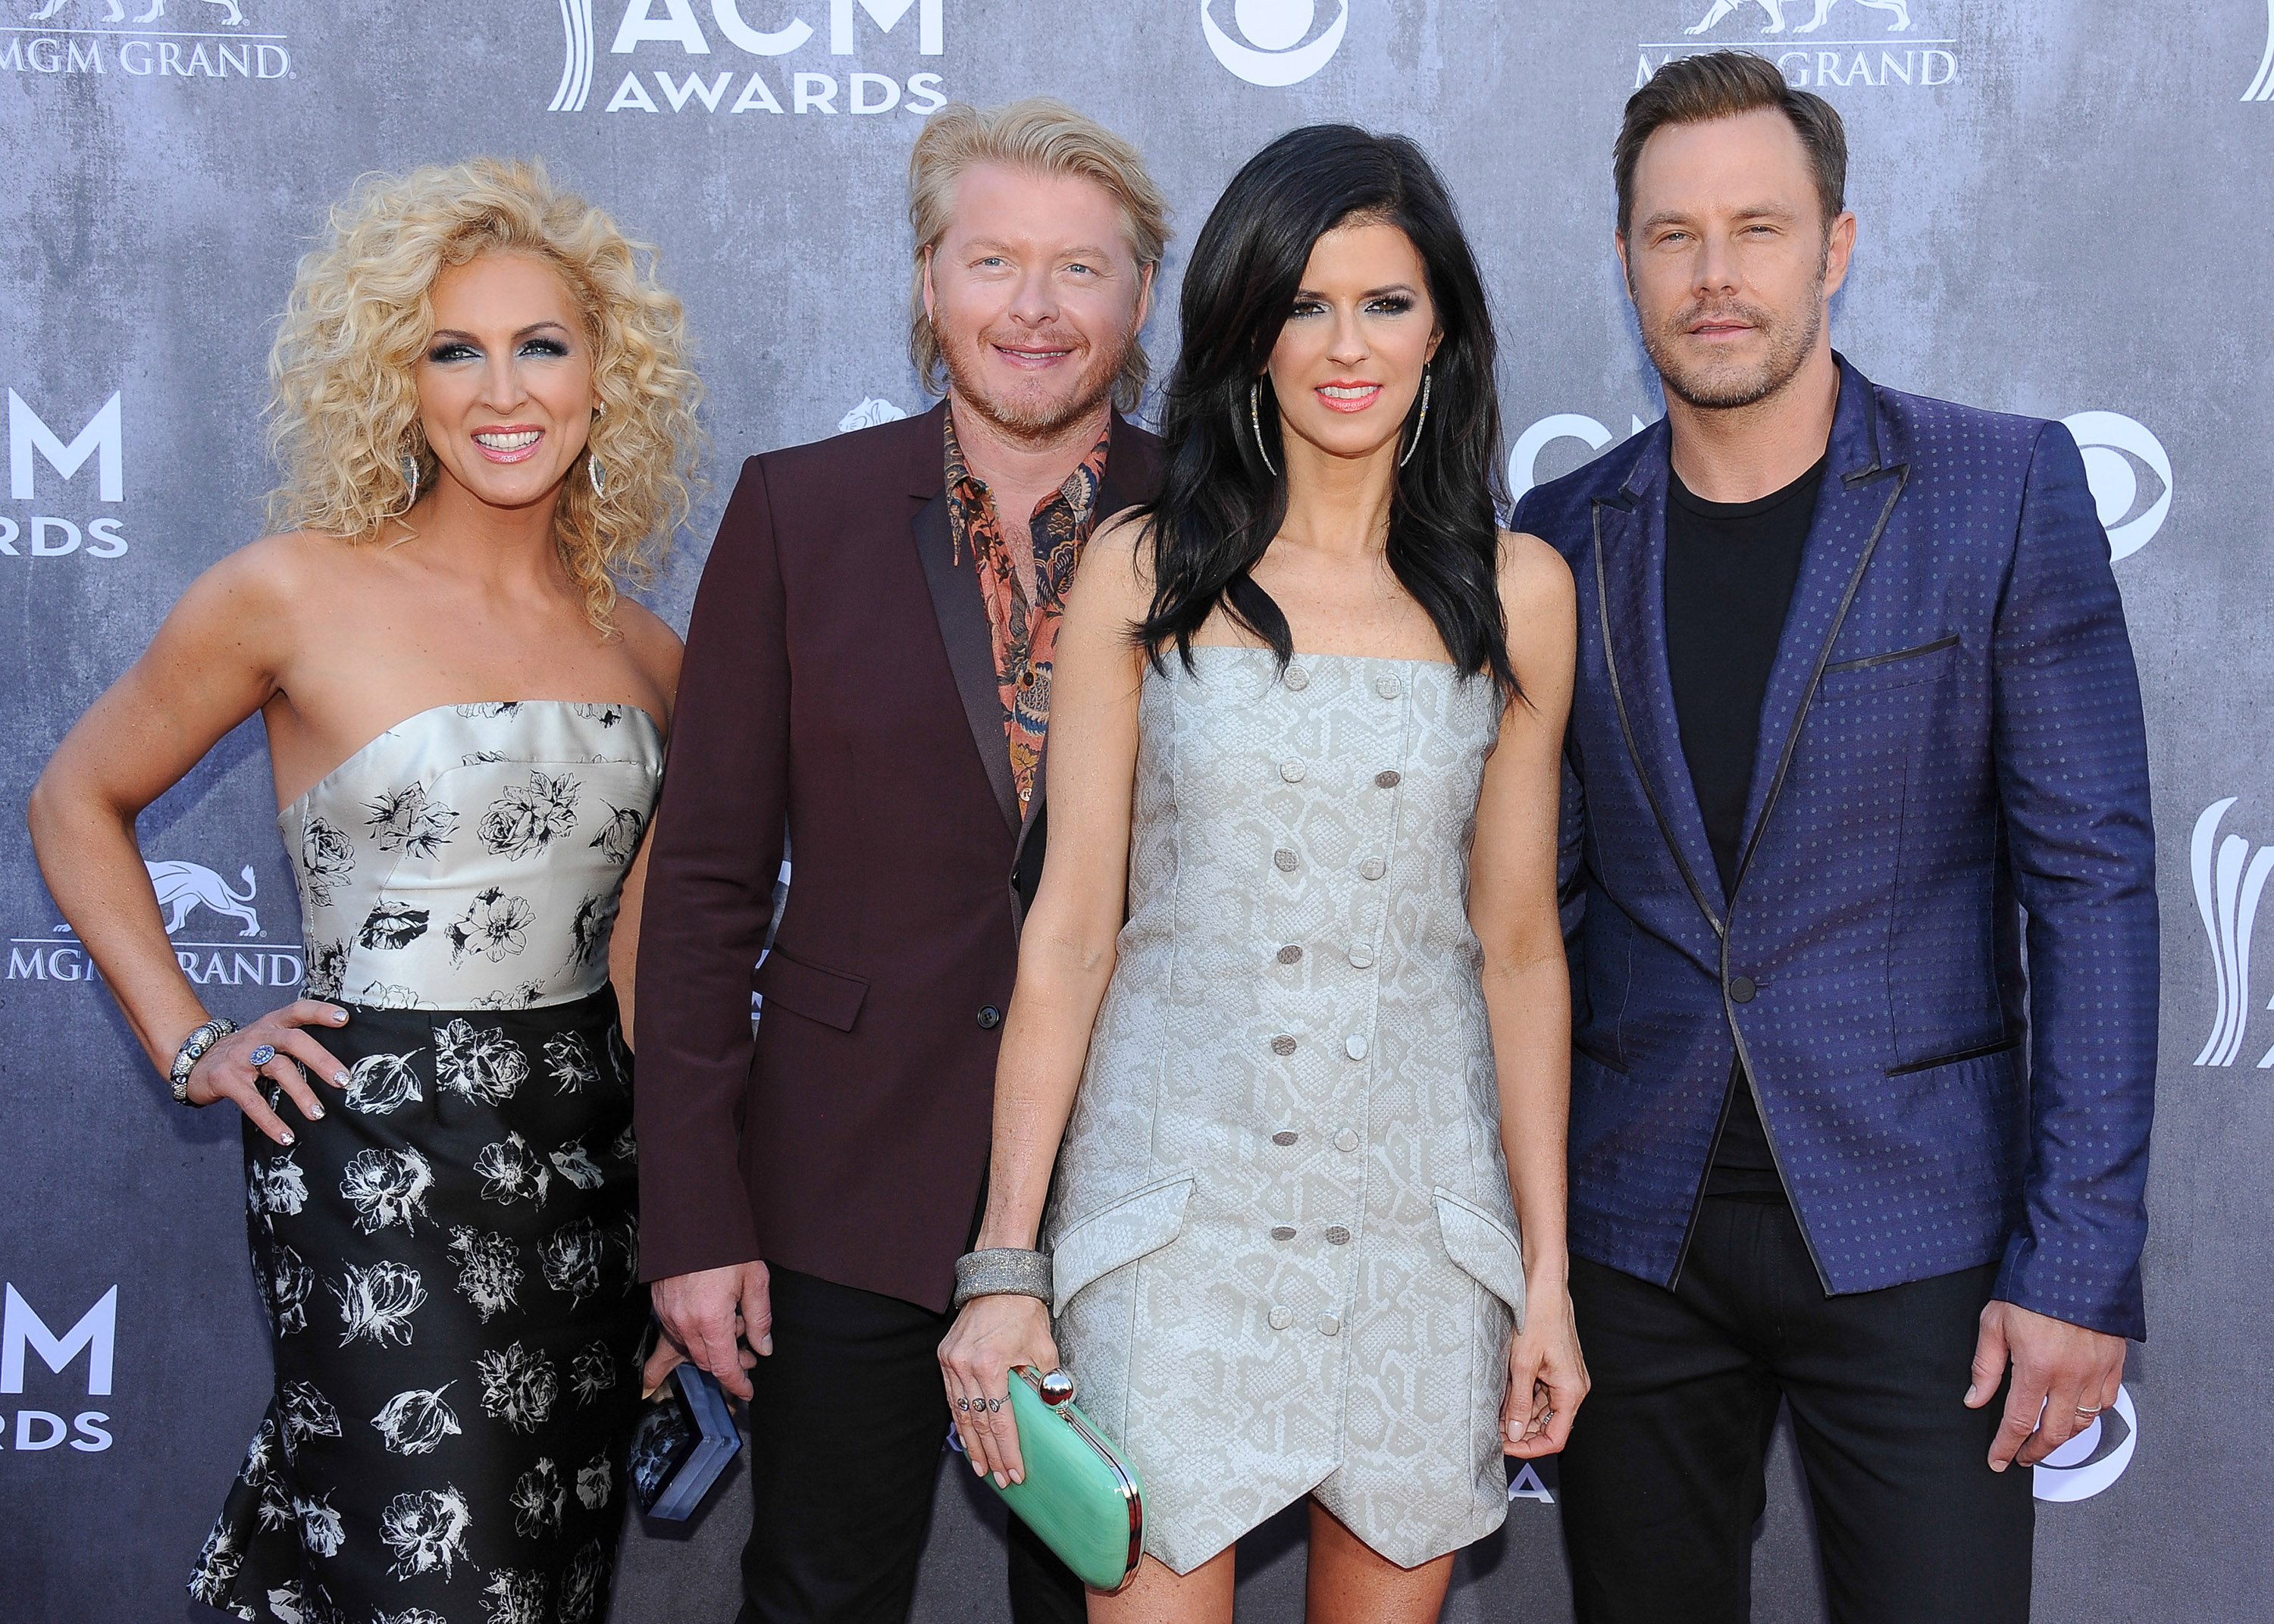 13. Little Big Town